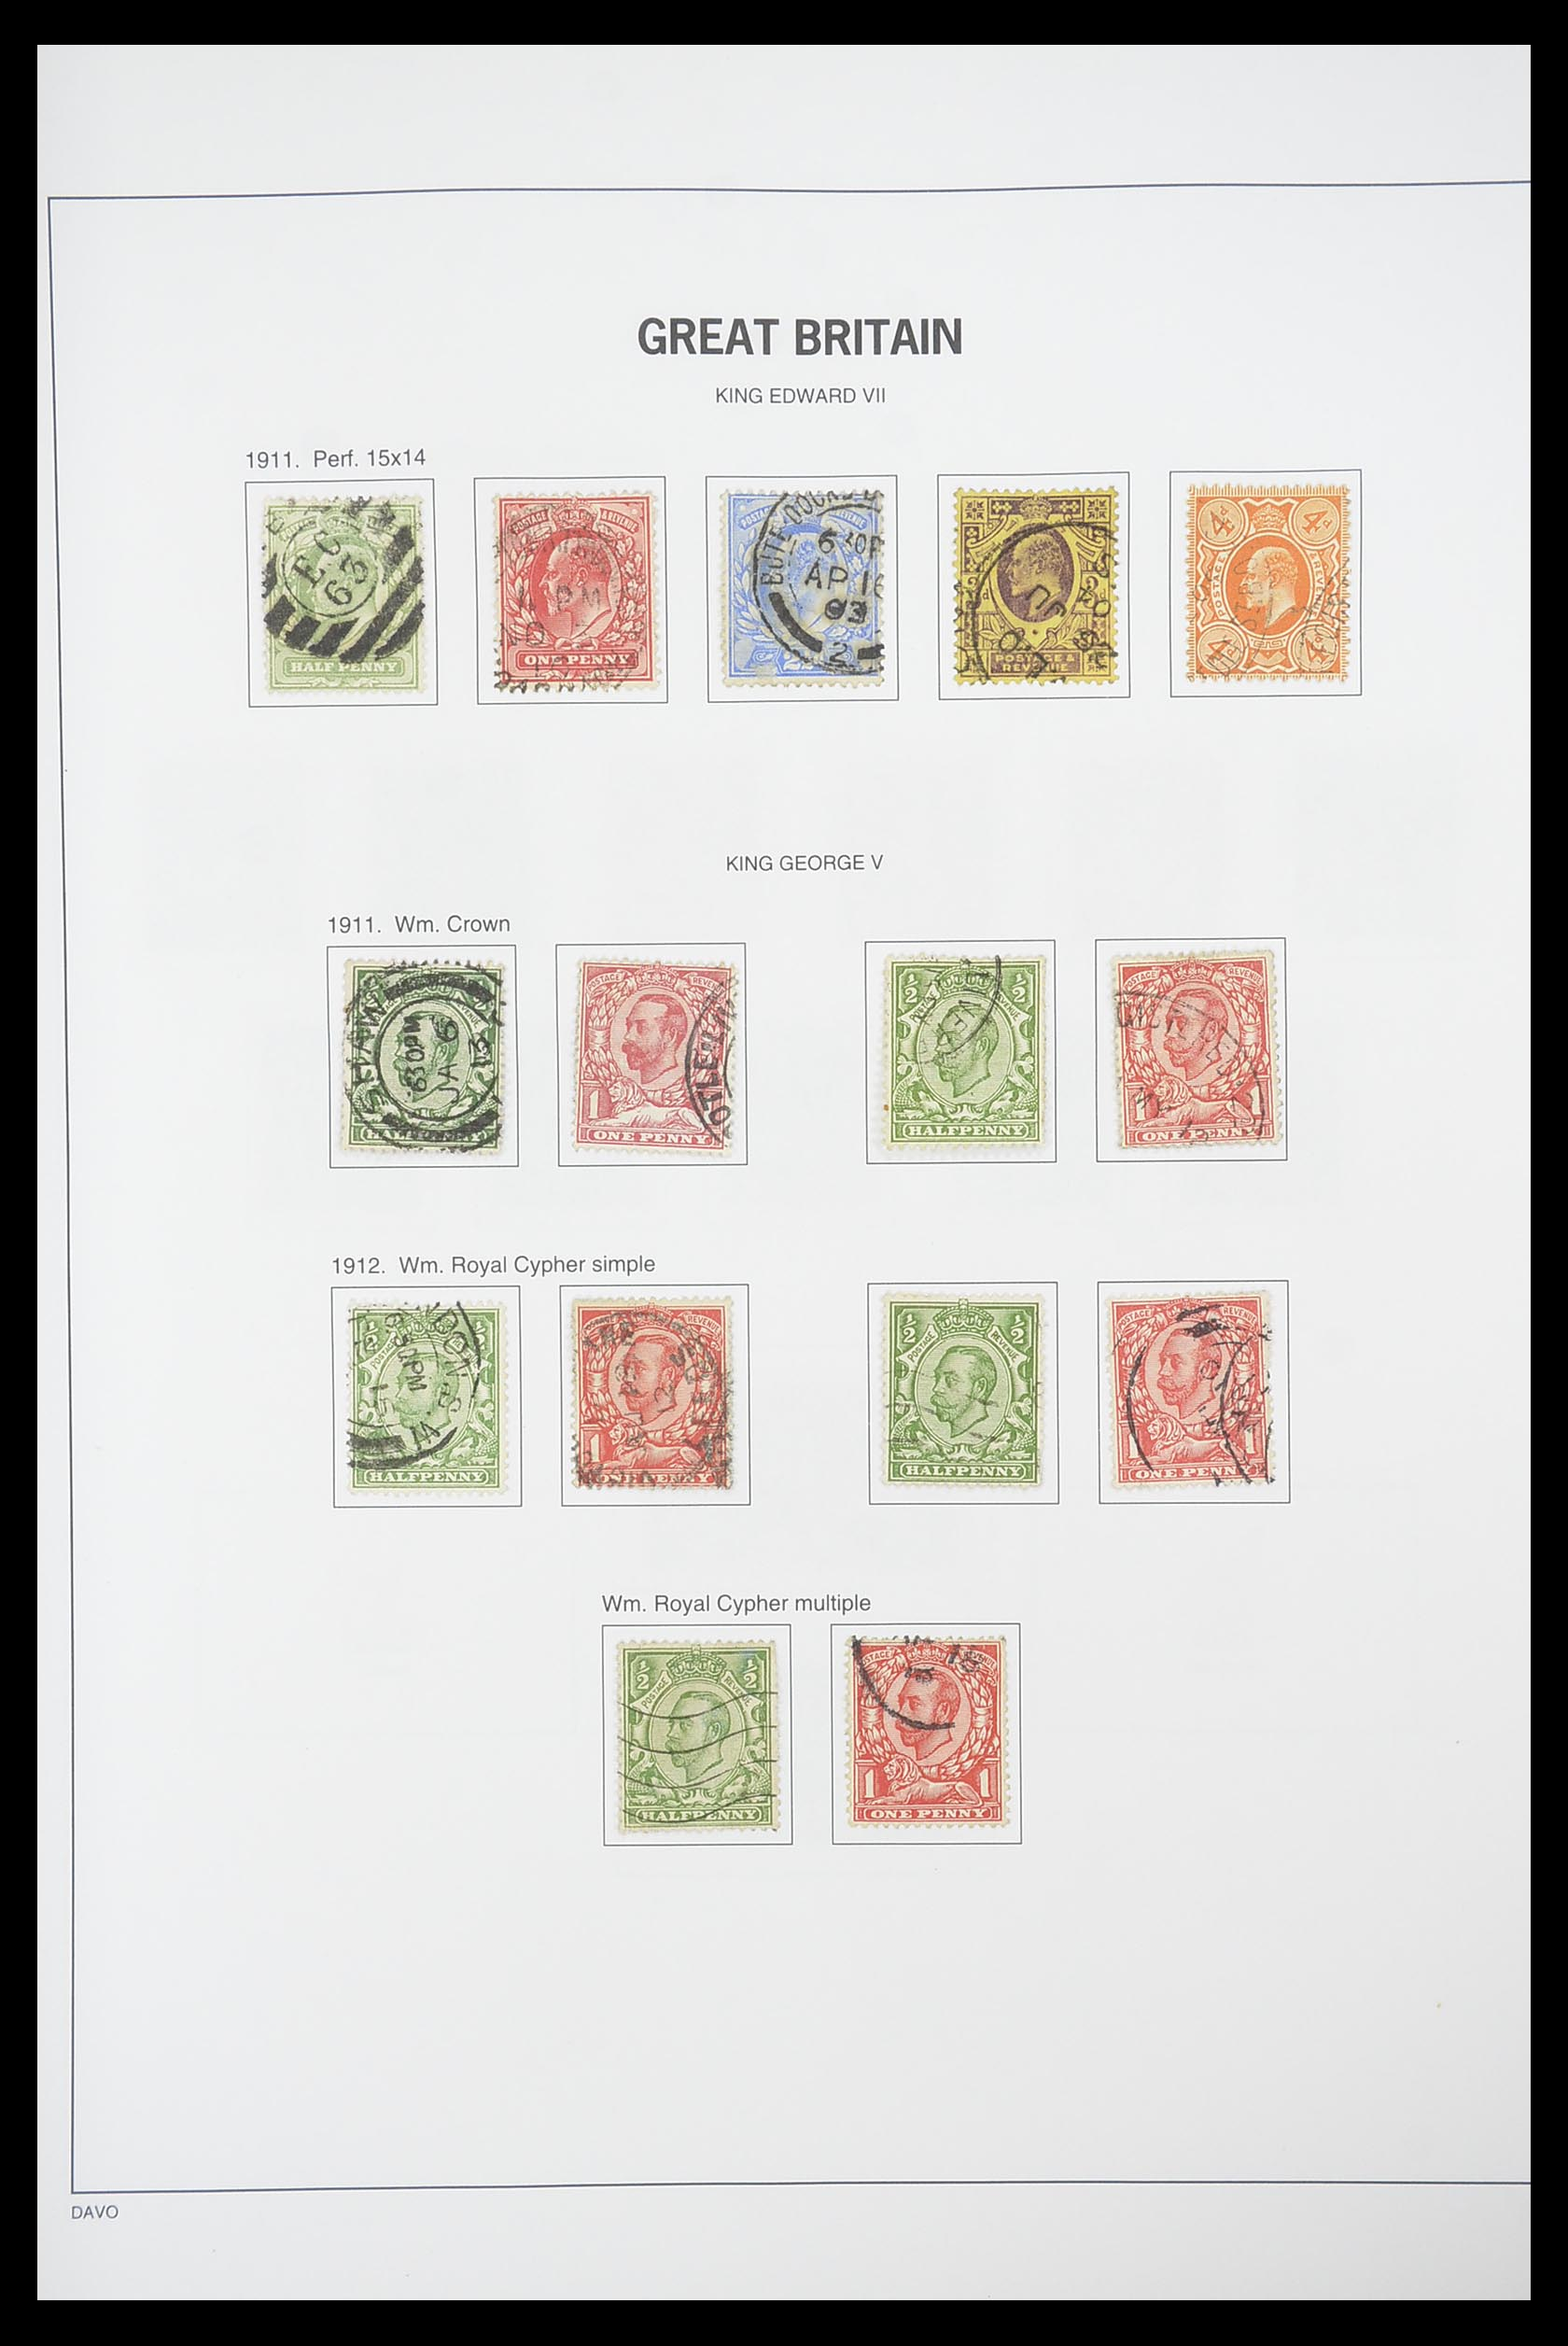 33898 008 - Stamp collection 33898 Great Britain 1840-2006.